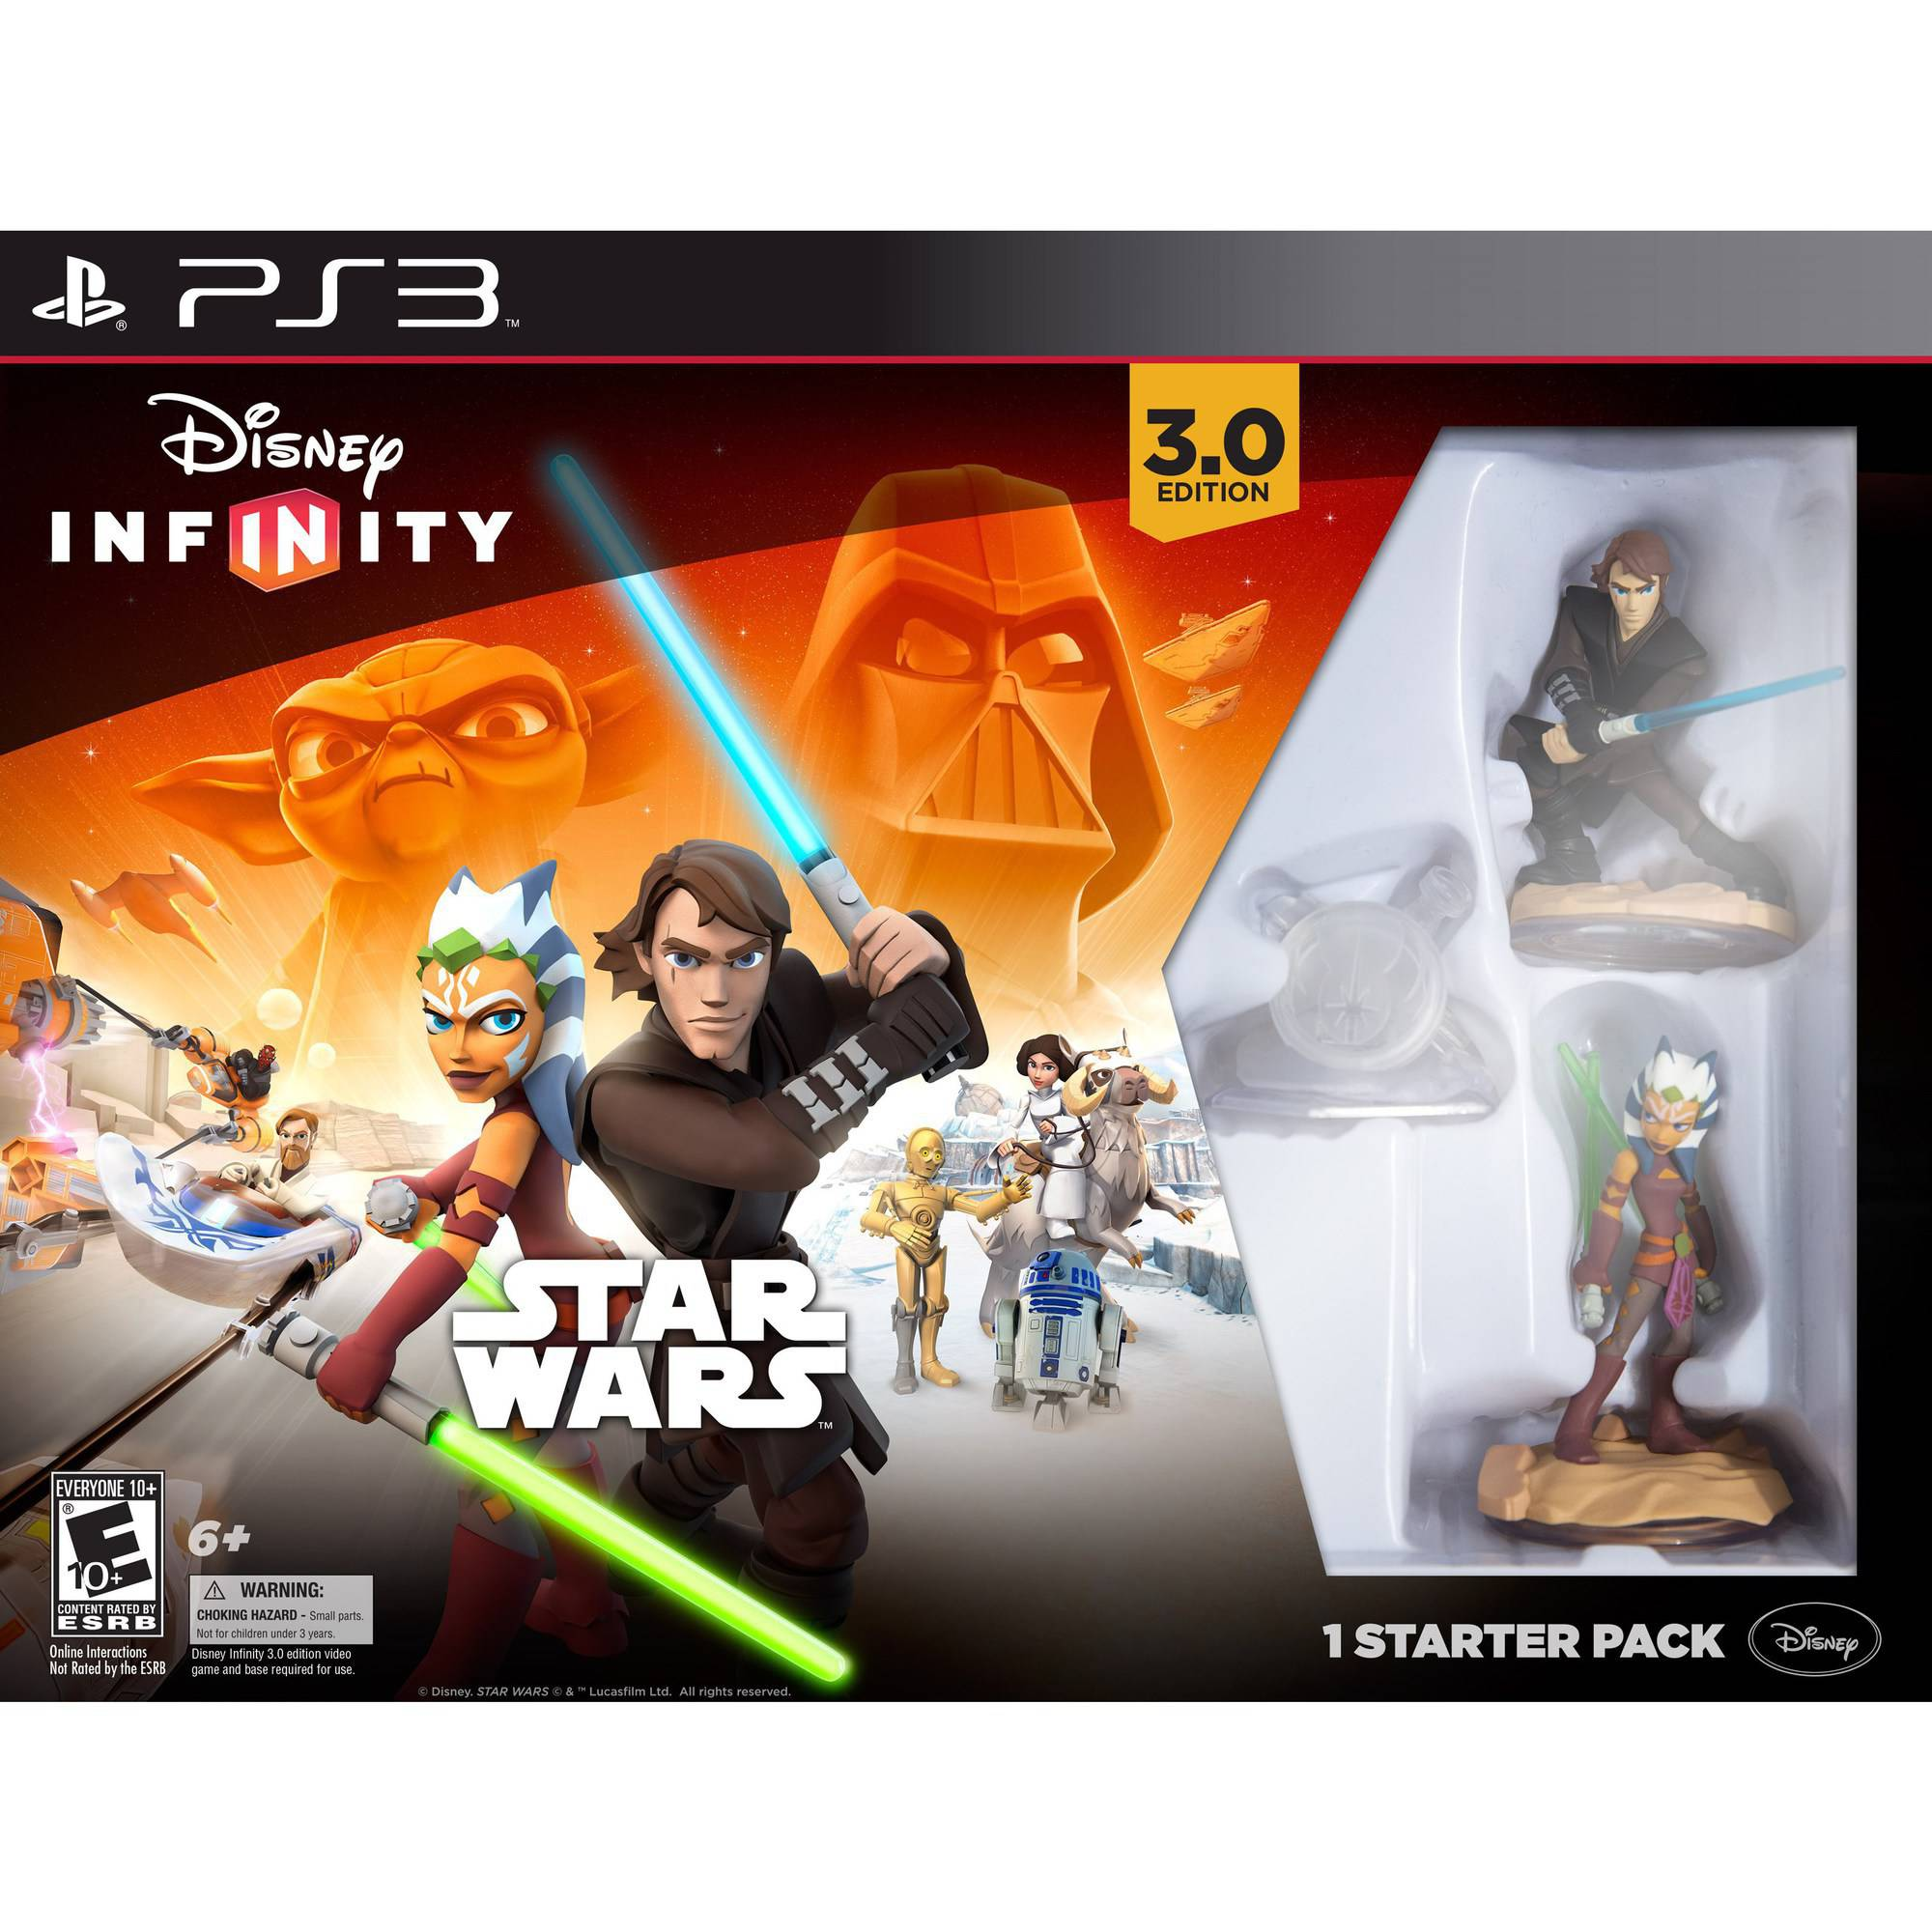 Disney Infinity 3.0 Edition Starter Pack (PS3)